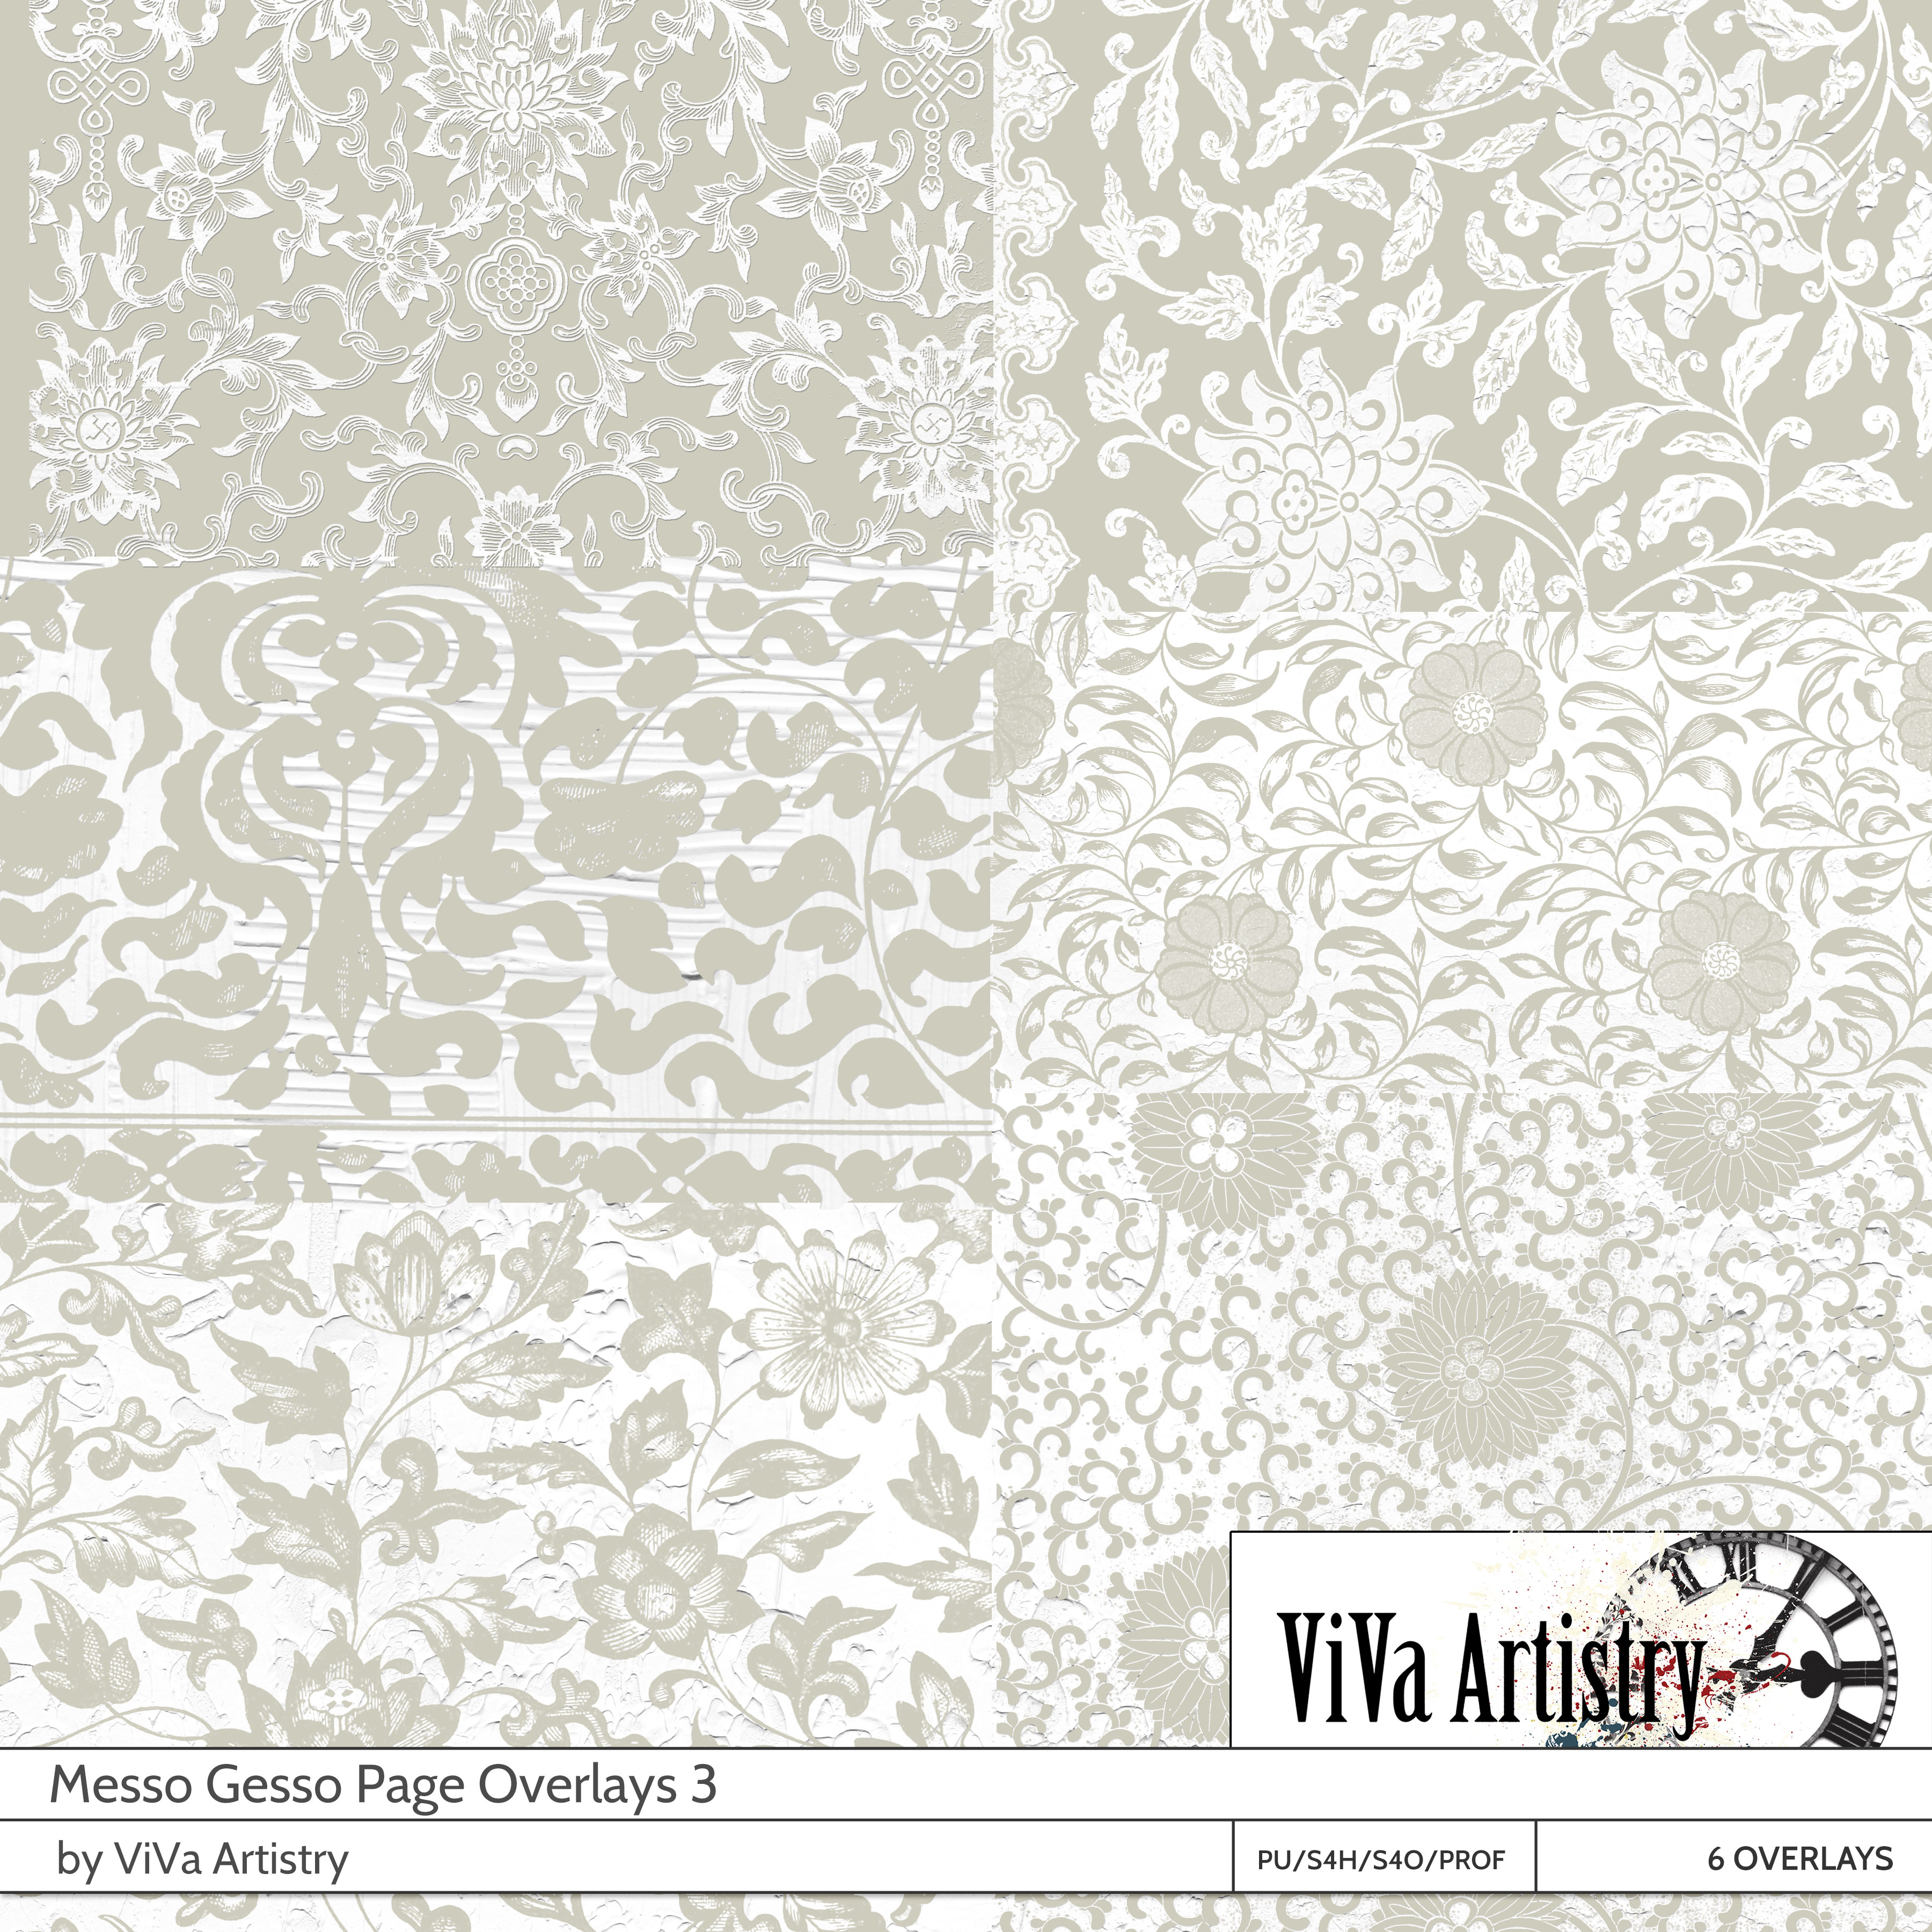 Messo Gesso: Page Overlays 3